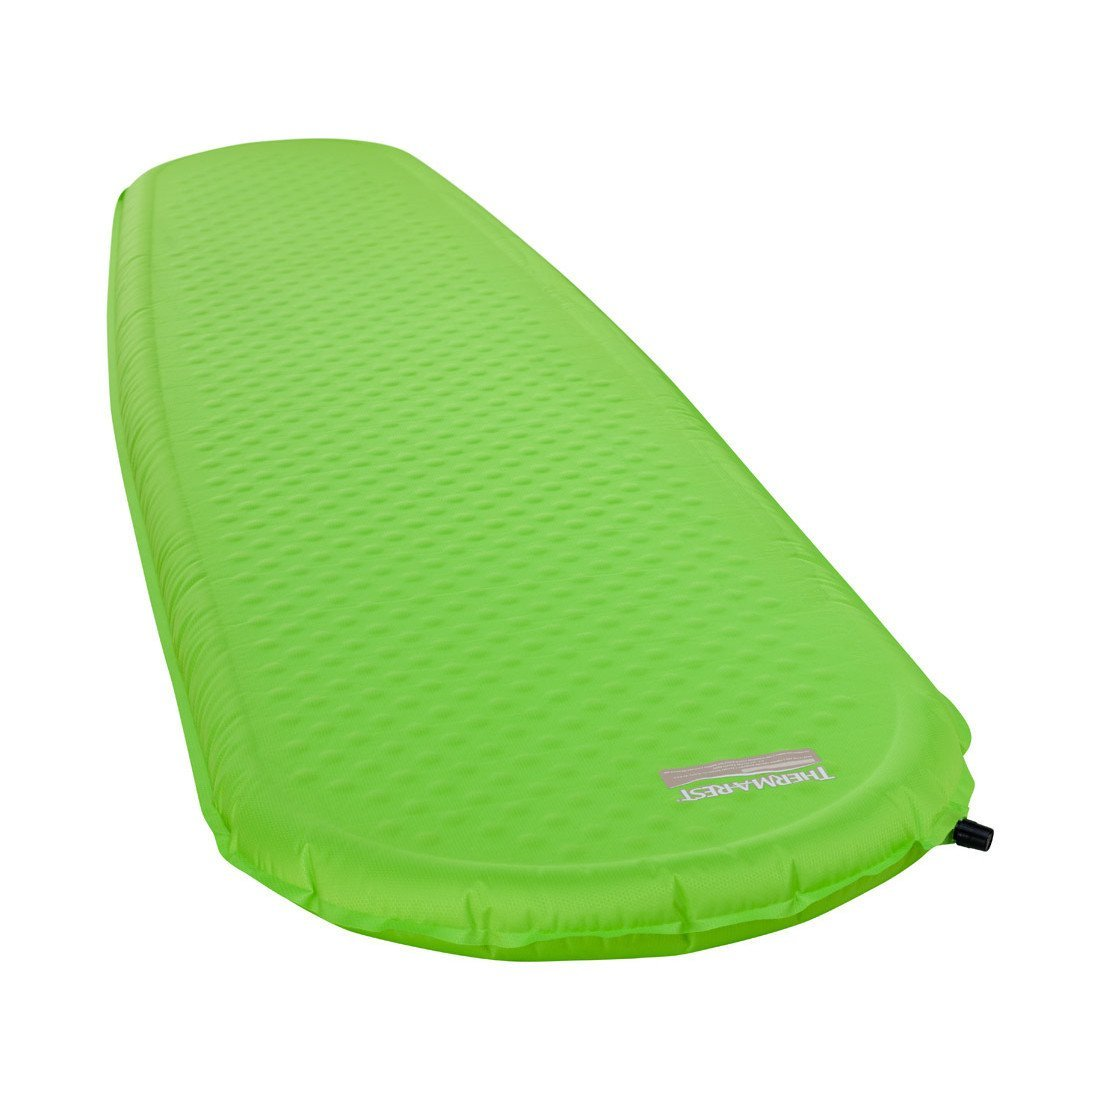 Thermarest Trail Pro Large camping mat, shown inflated and laid flat, in green colour